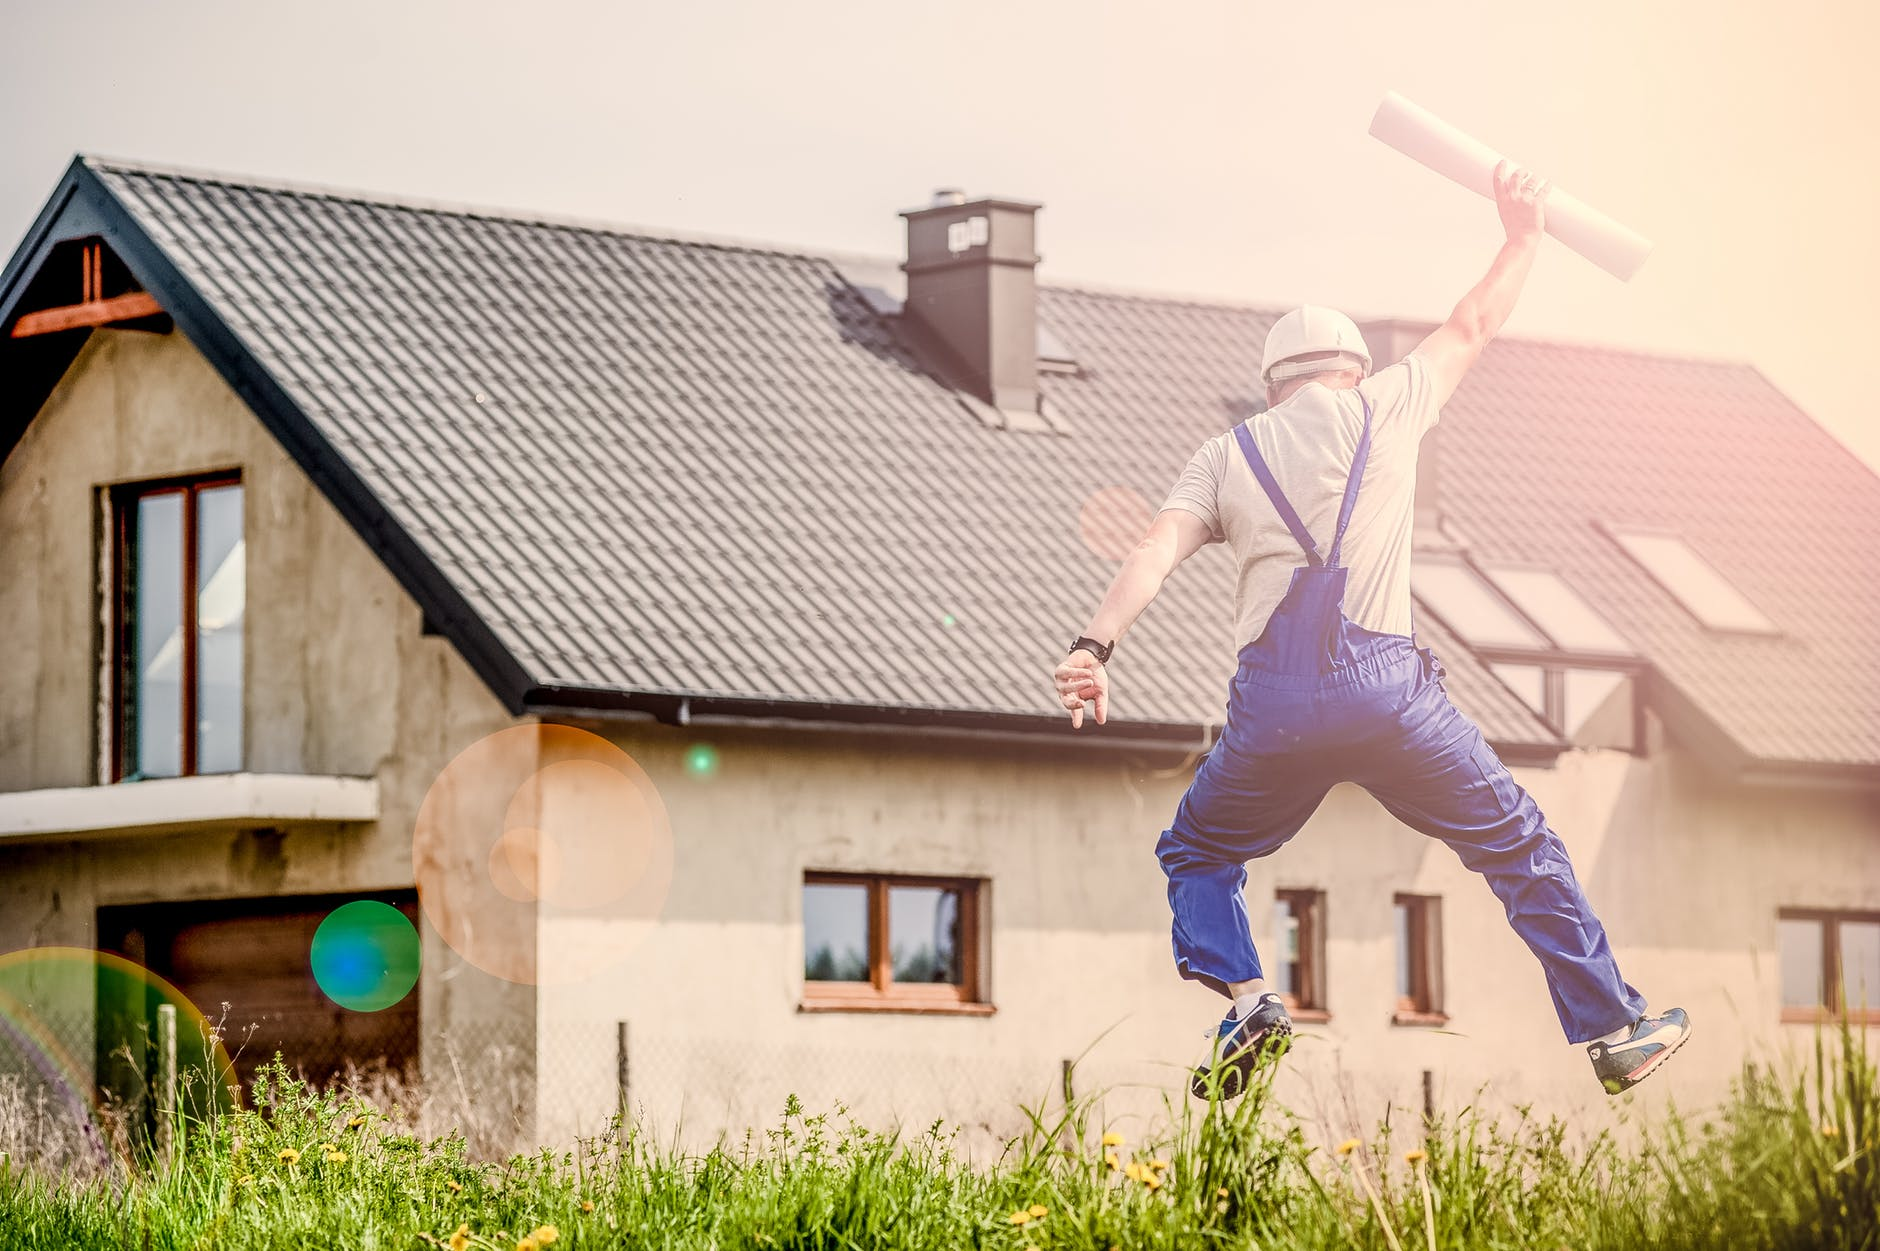 I want to grow my home building business